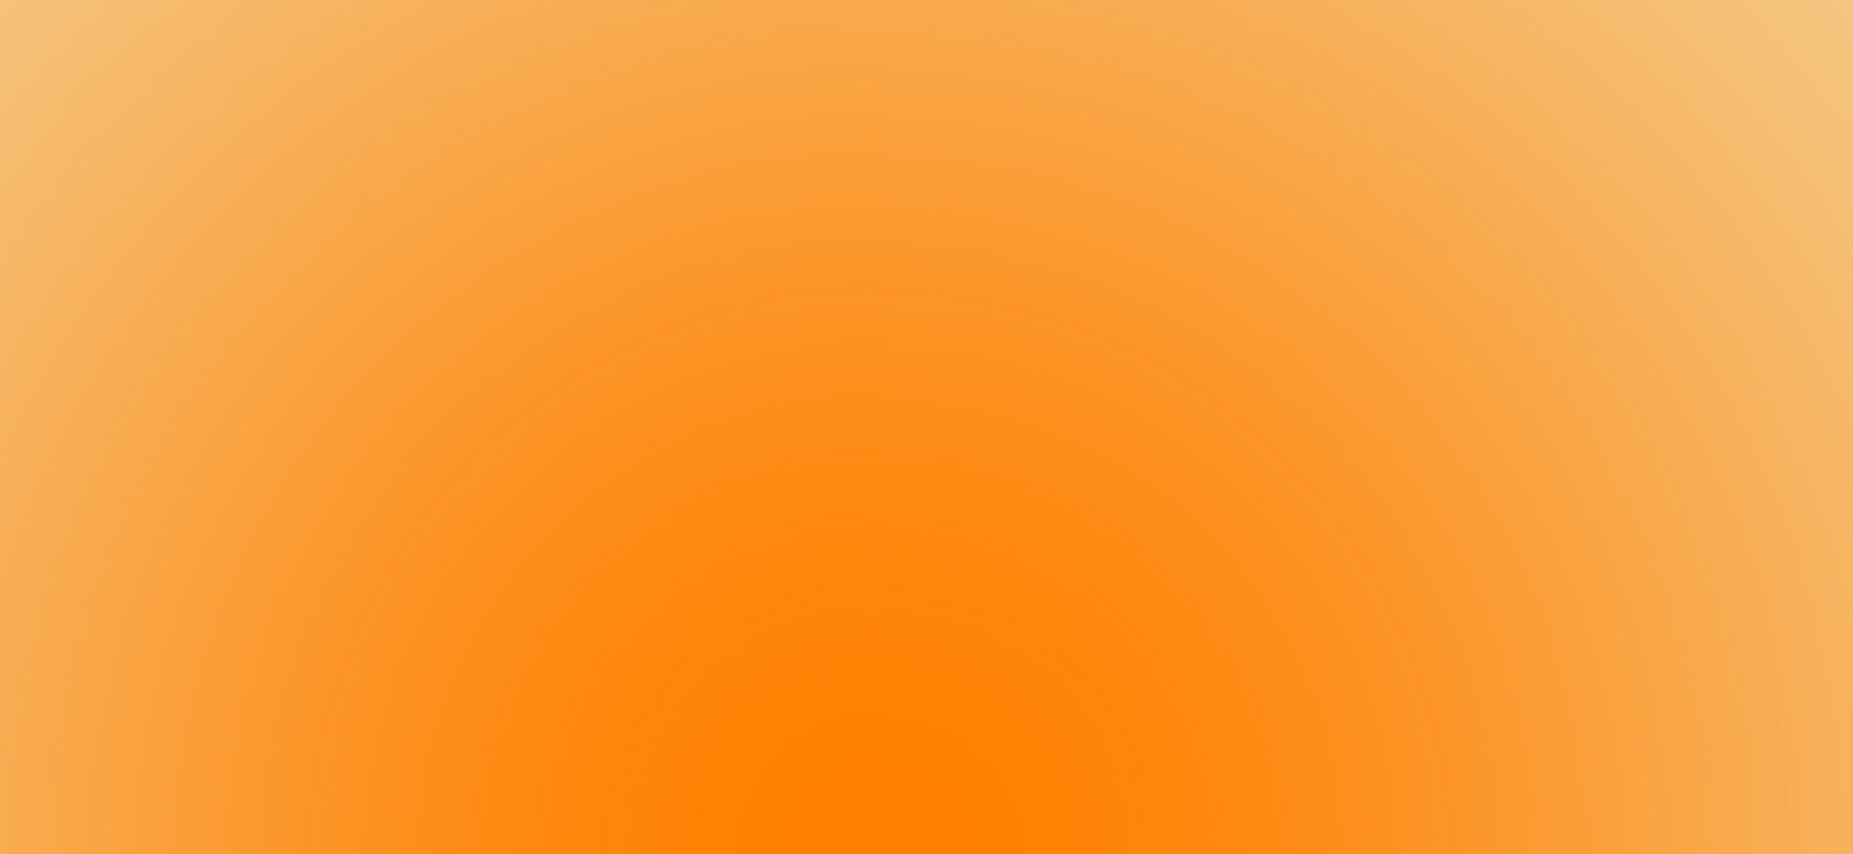 Orange-Background